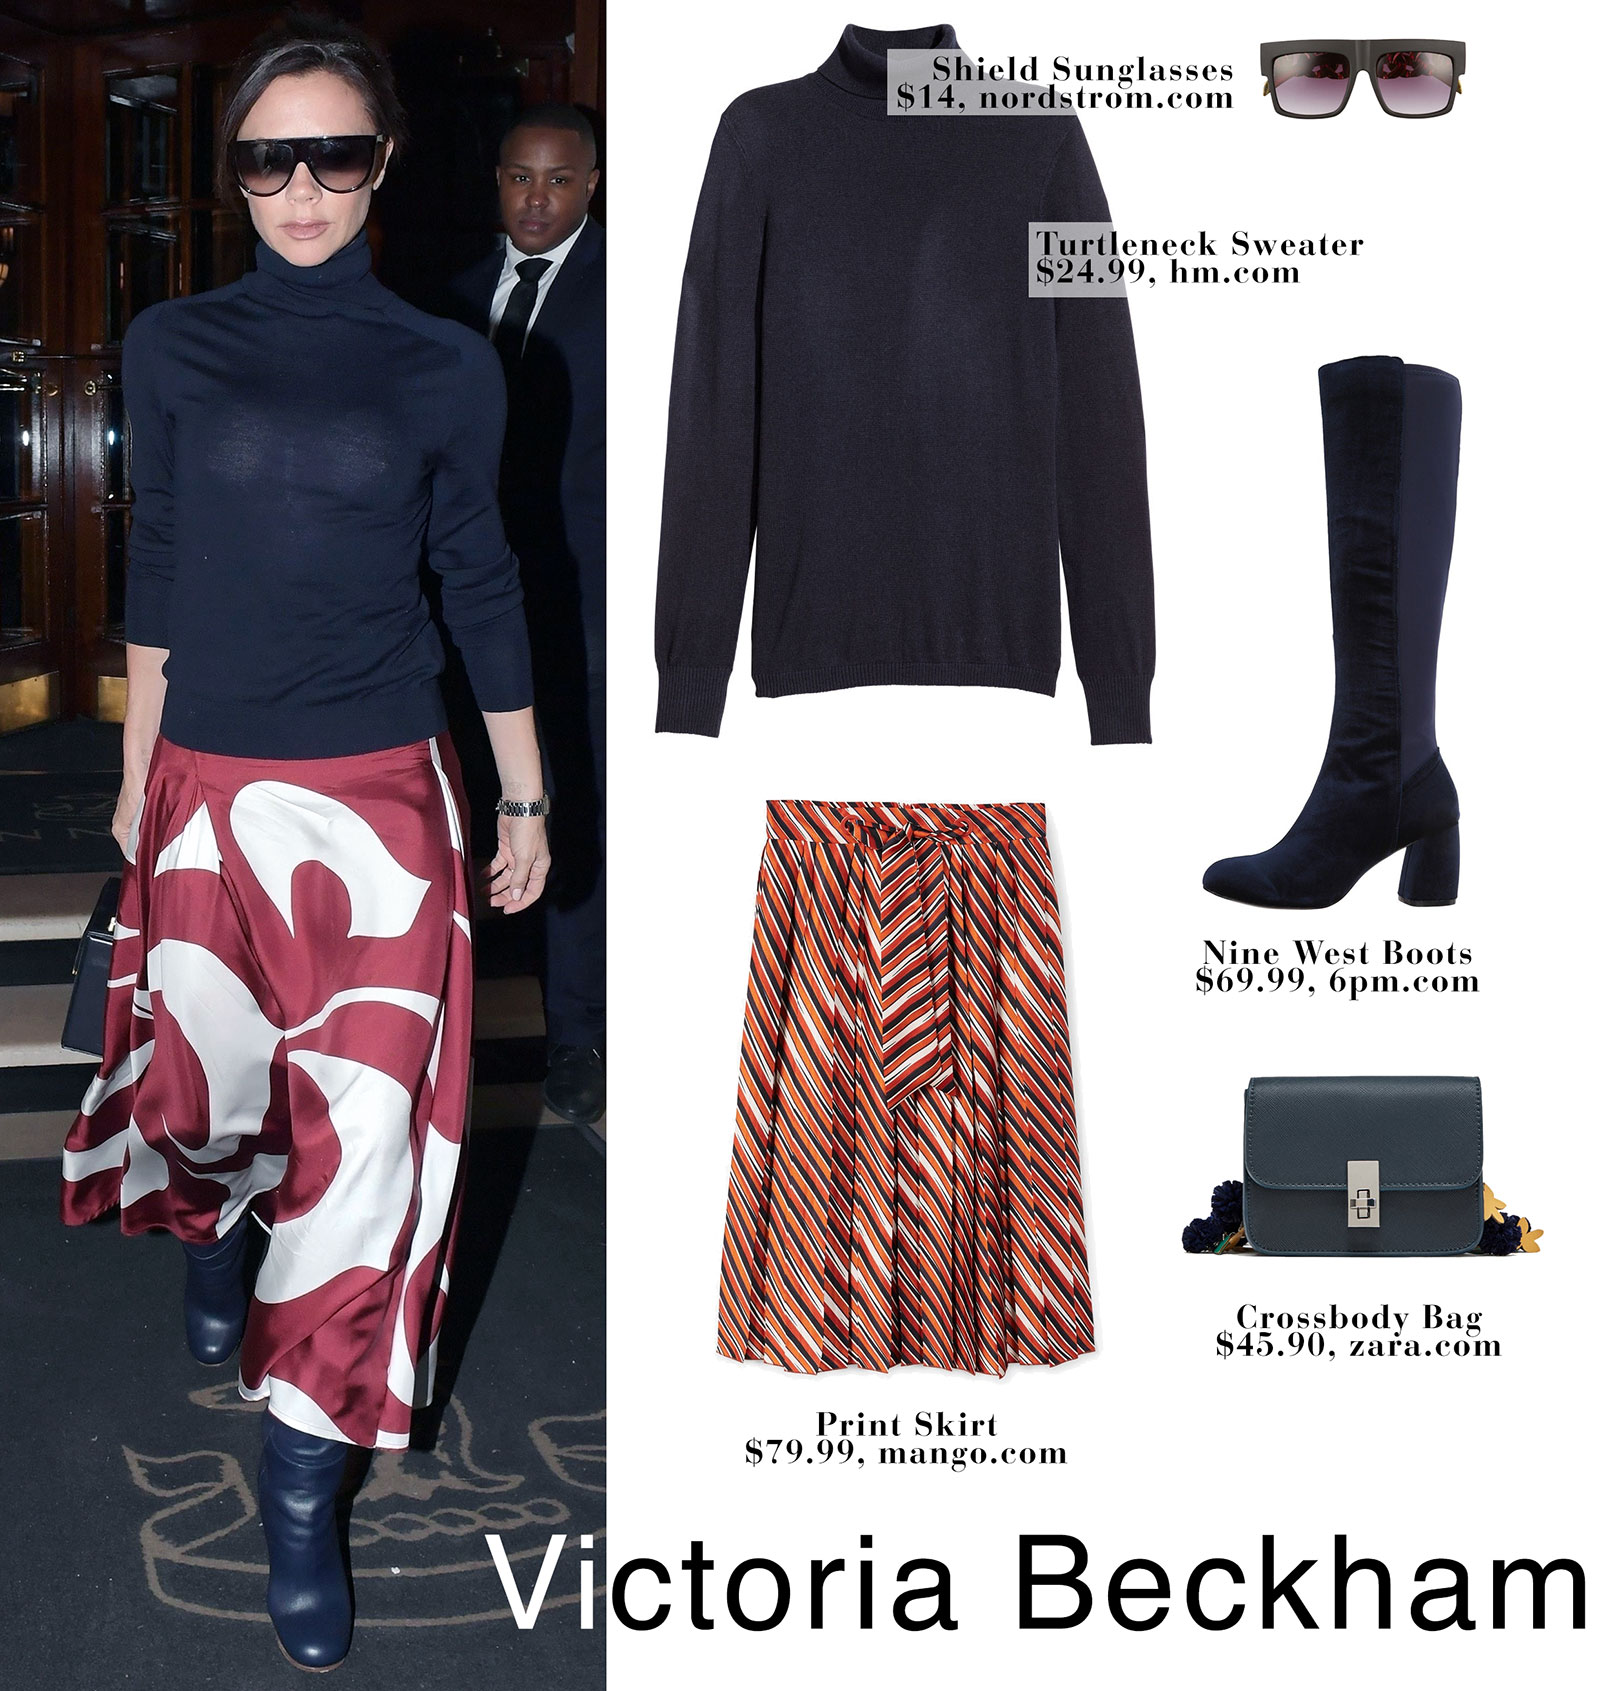 Victoria Beckham's print midi skirt and navy turtleneck look for less